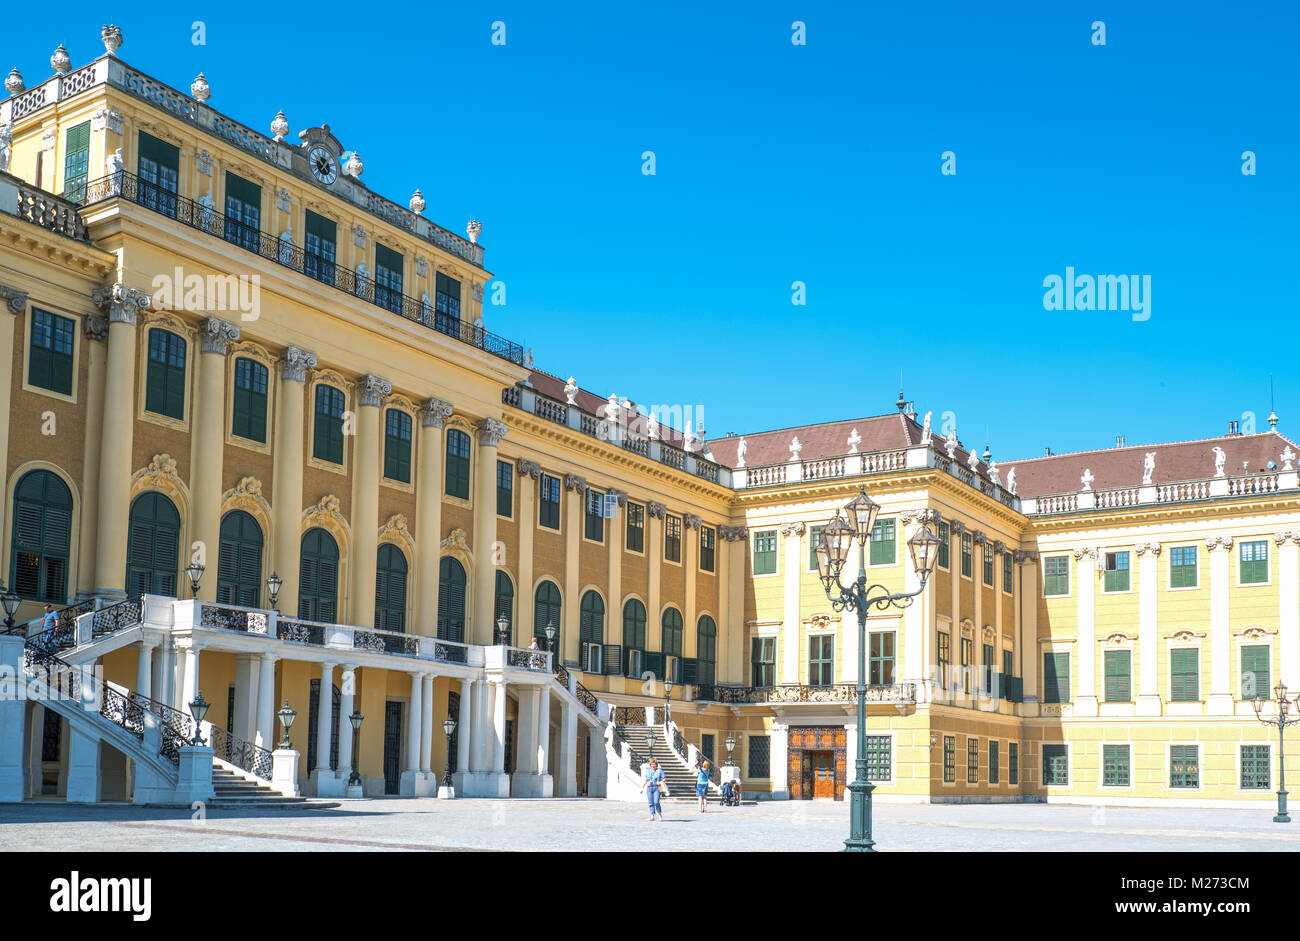 Austria, Vienna,  The main facade of the Schonbrunn Palace - Stock Image